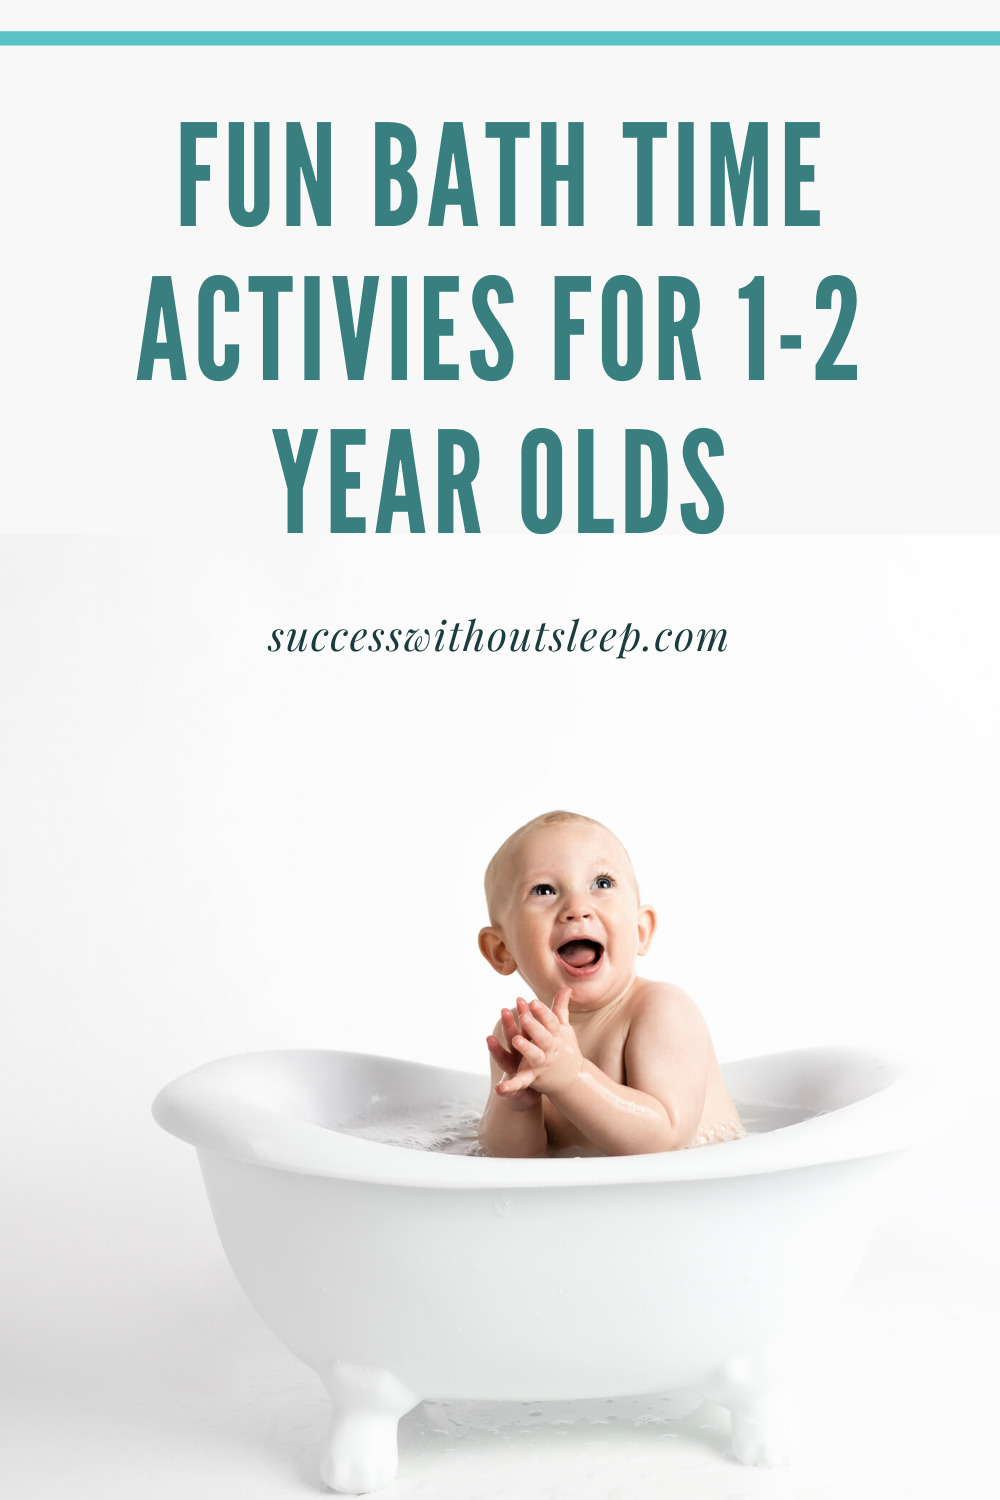 Fun Bath Time Activities For 1 2 Year Olds In 2020 Activities For One Year Olds Activities For 1 Year Olds Baby Bath Time